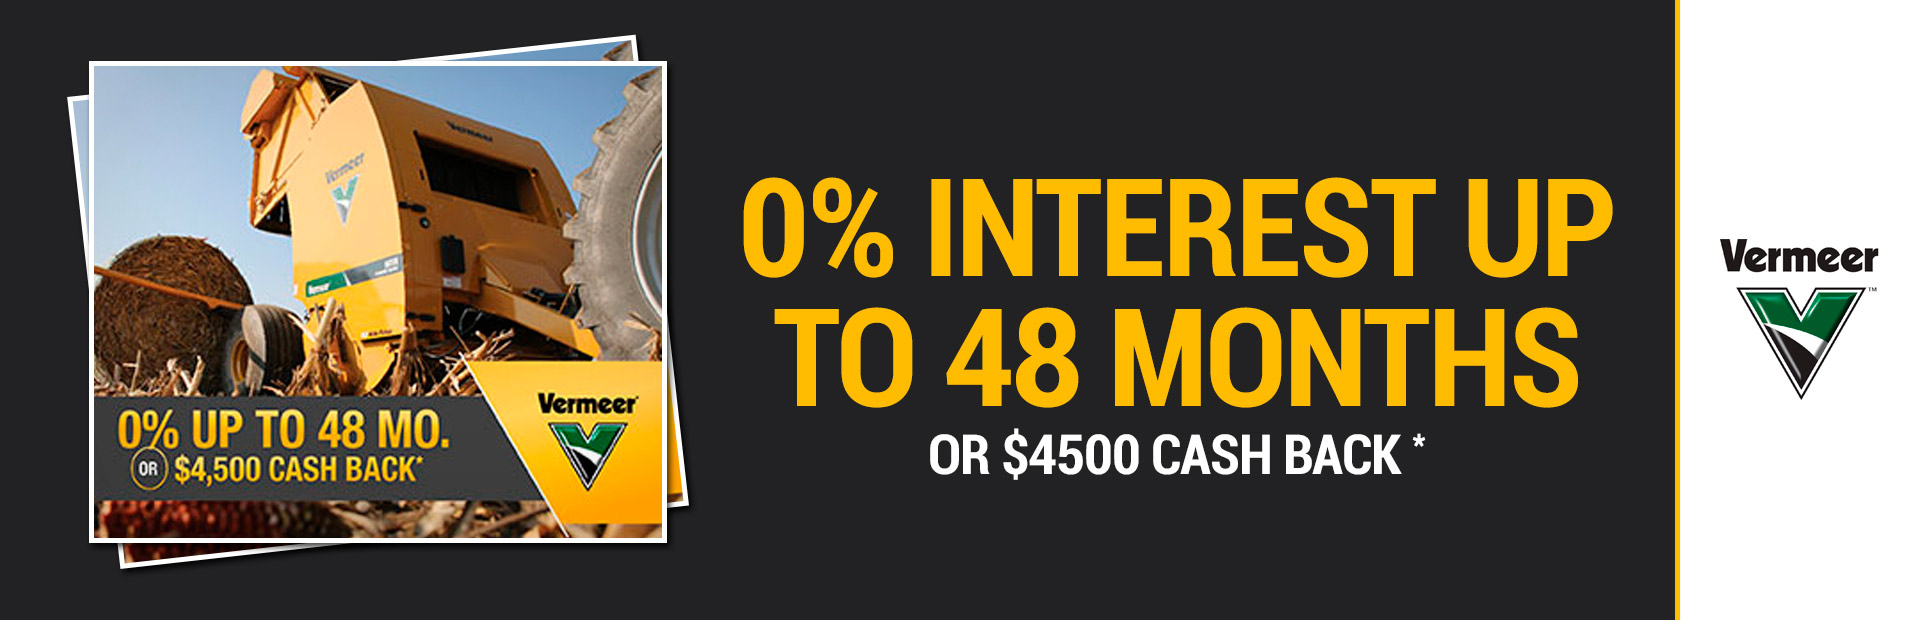 Vermeer: 0% Interest Up to 48 Months or $4500 Cash Back